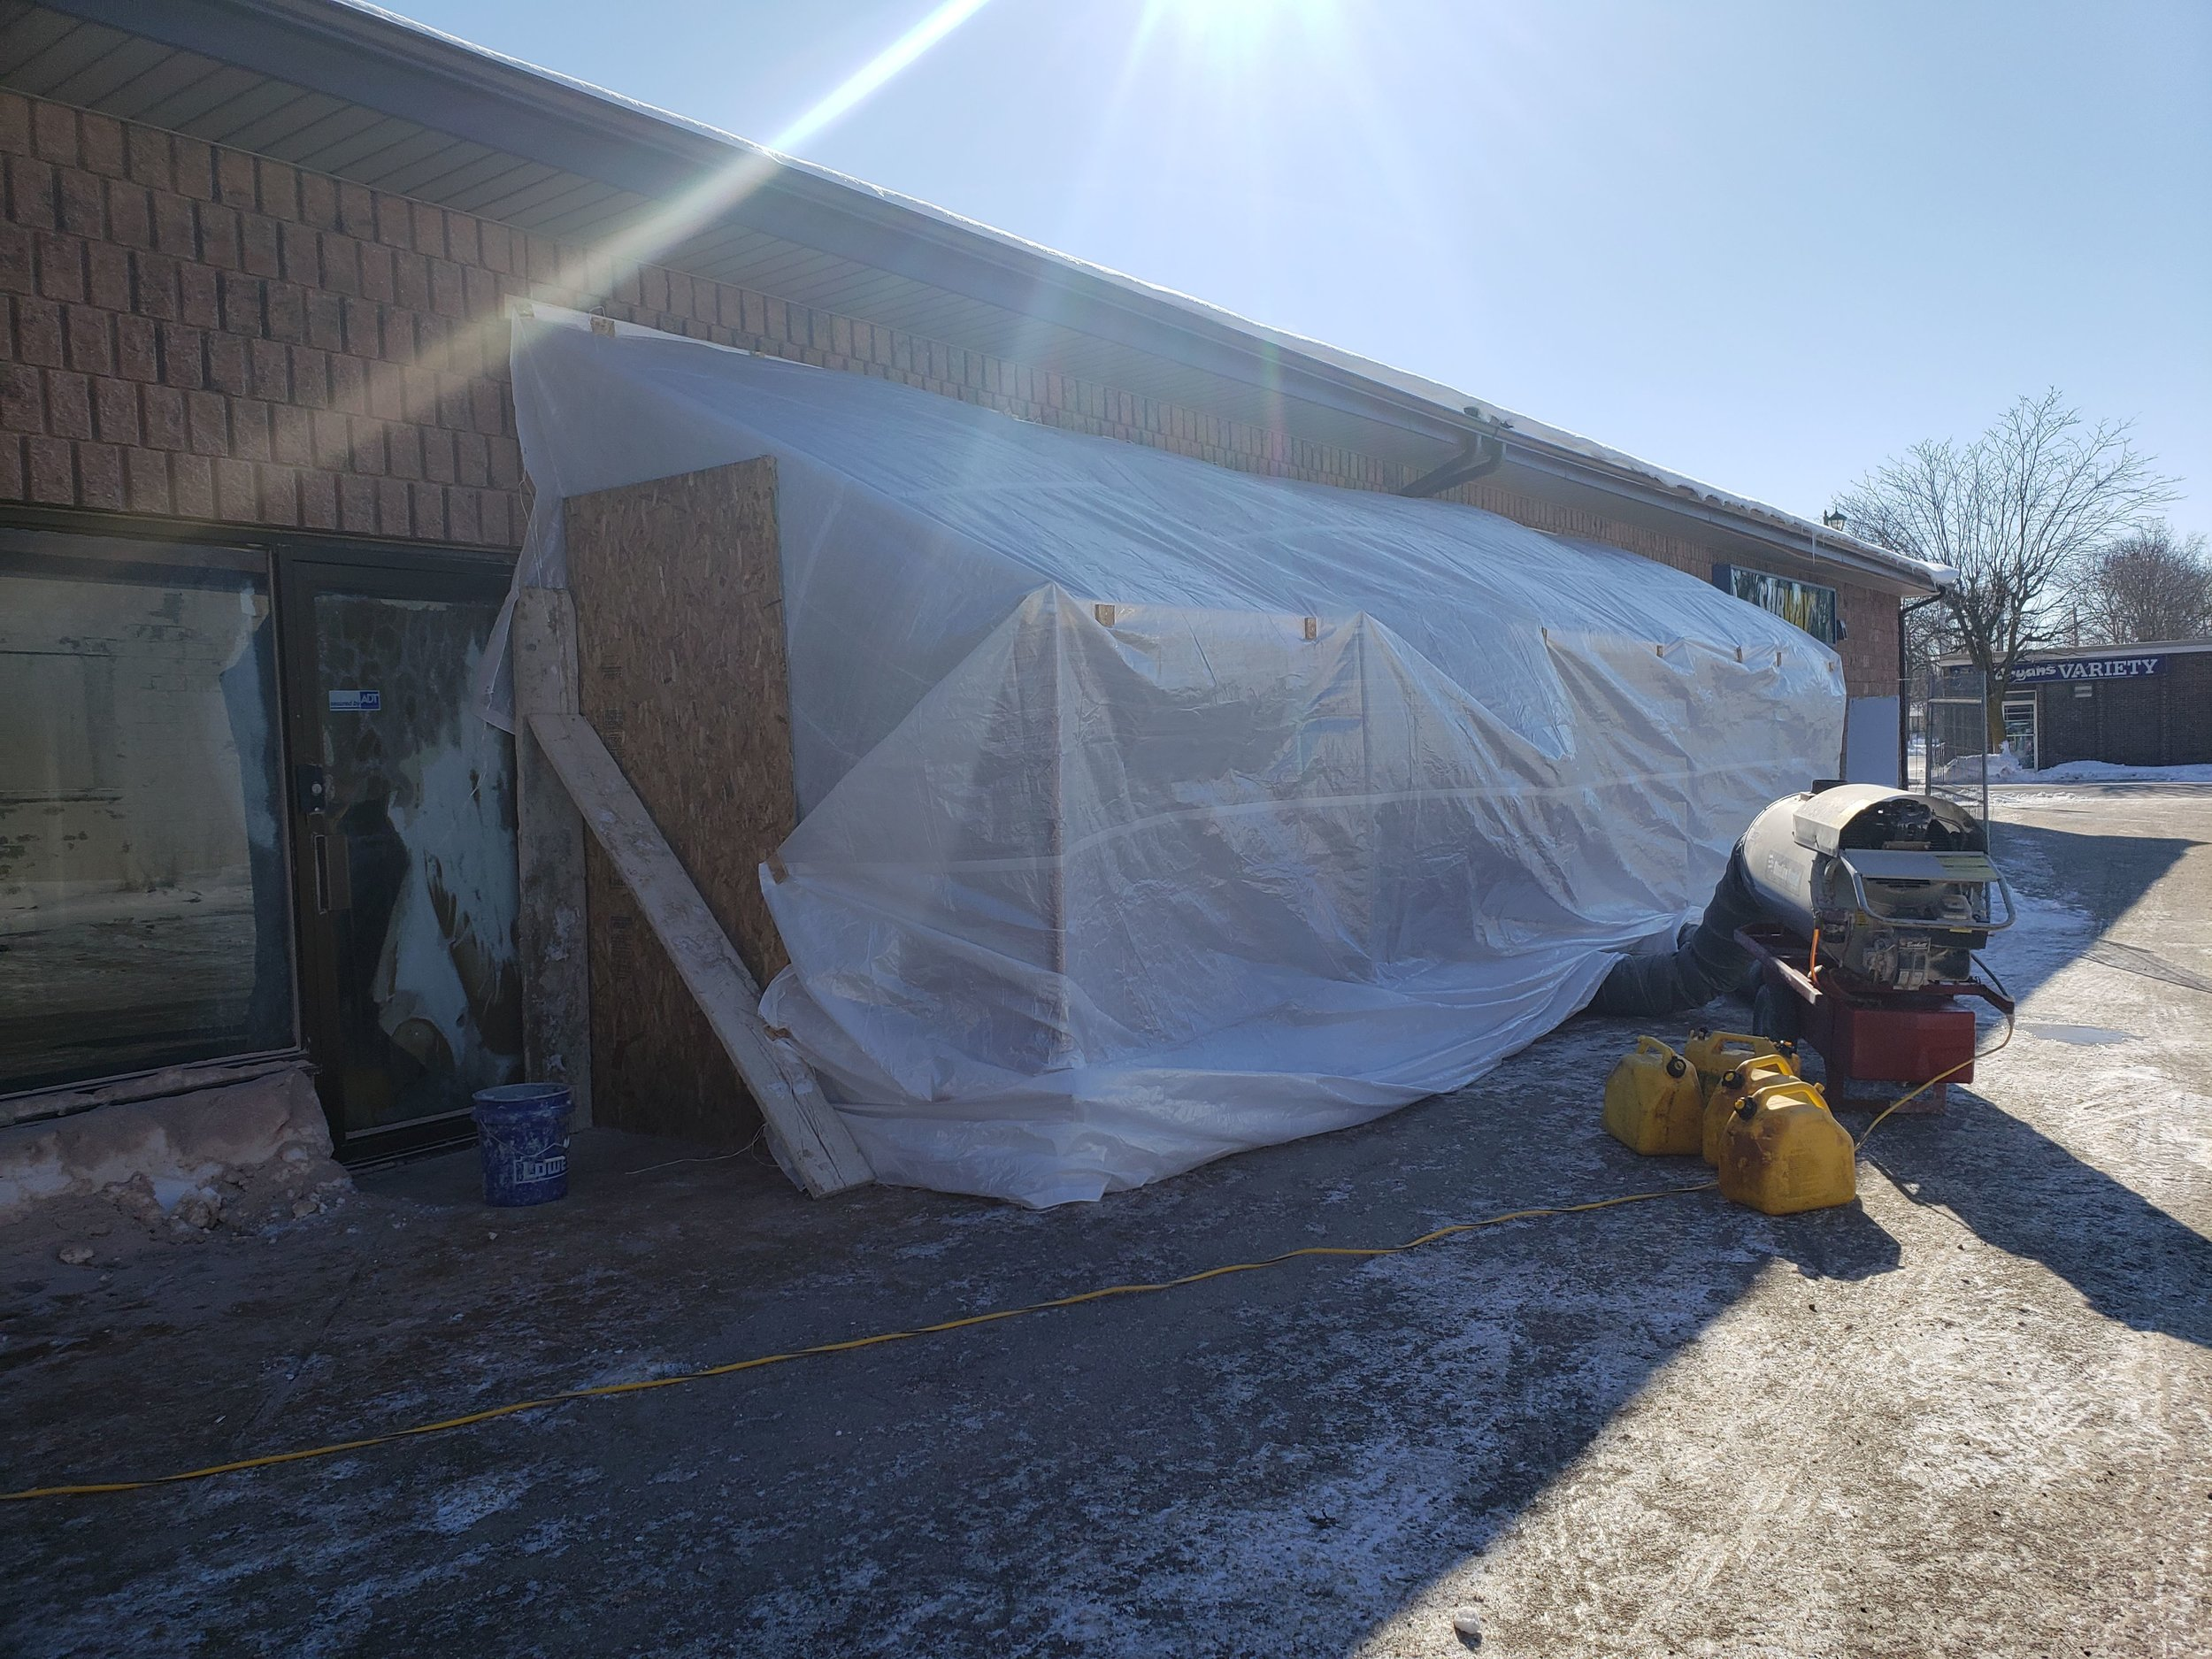 New front windows to reception area are being opened up on another cold day .